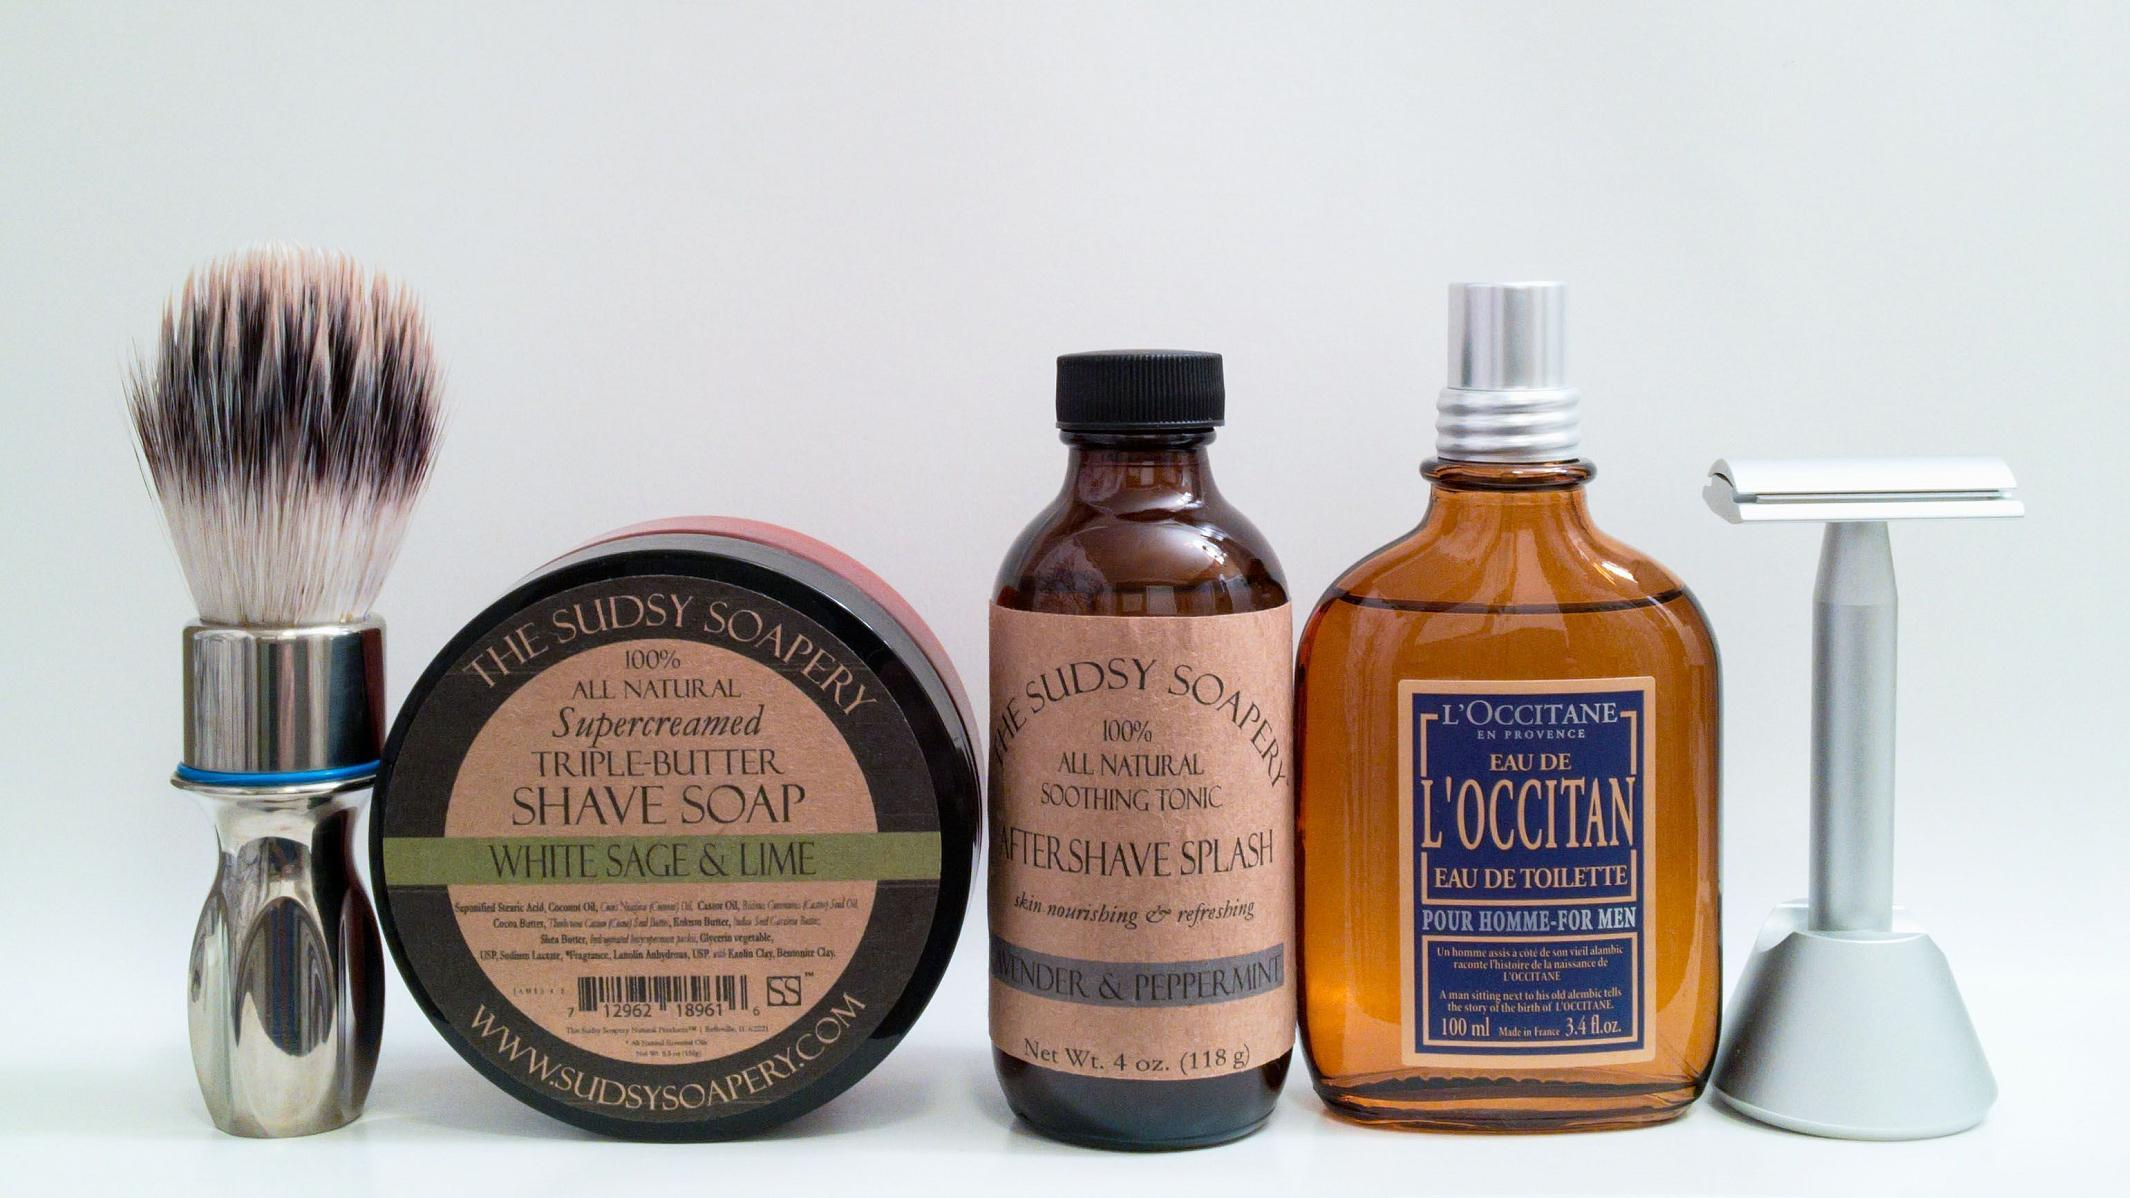 The Sudsy Soapery & L'Occitane